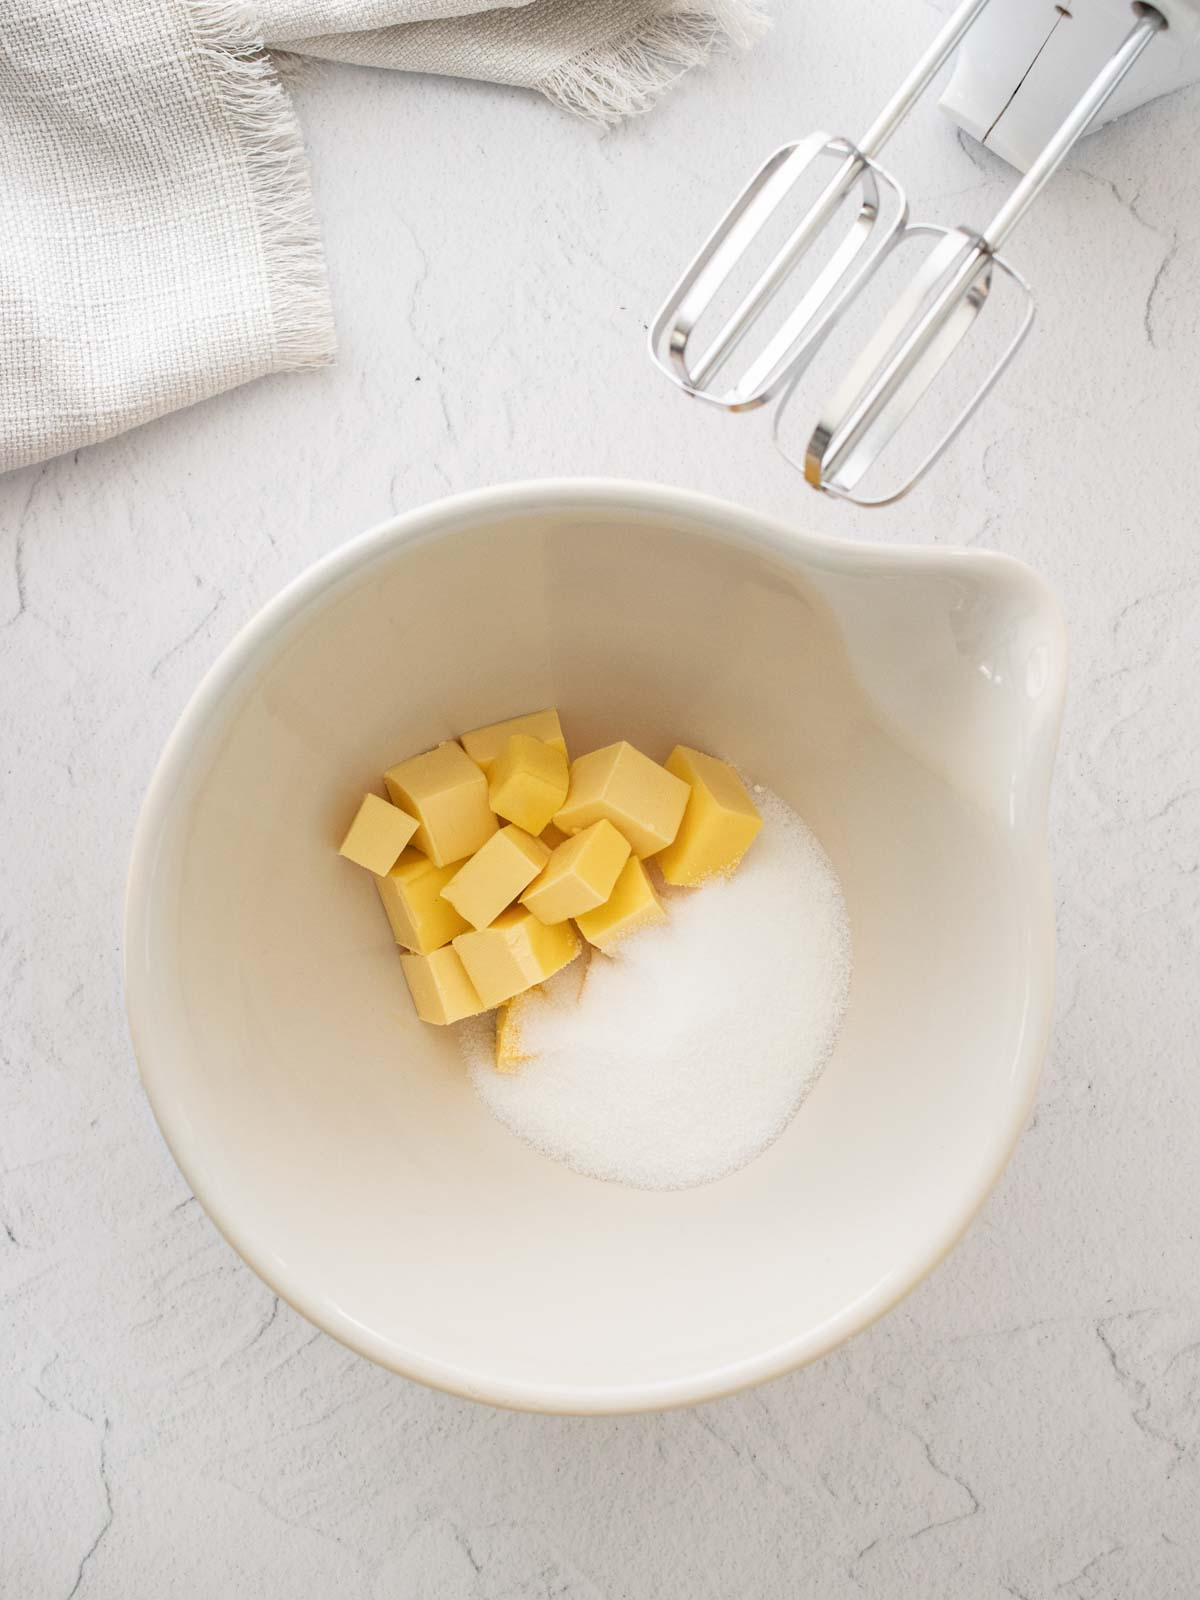 Butter and sugar in a bowl